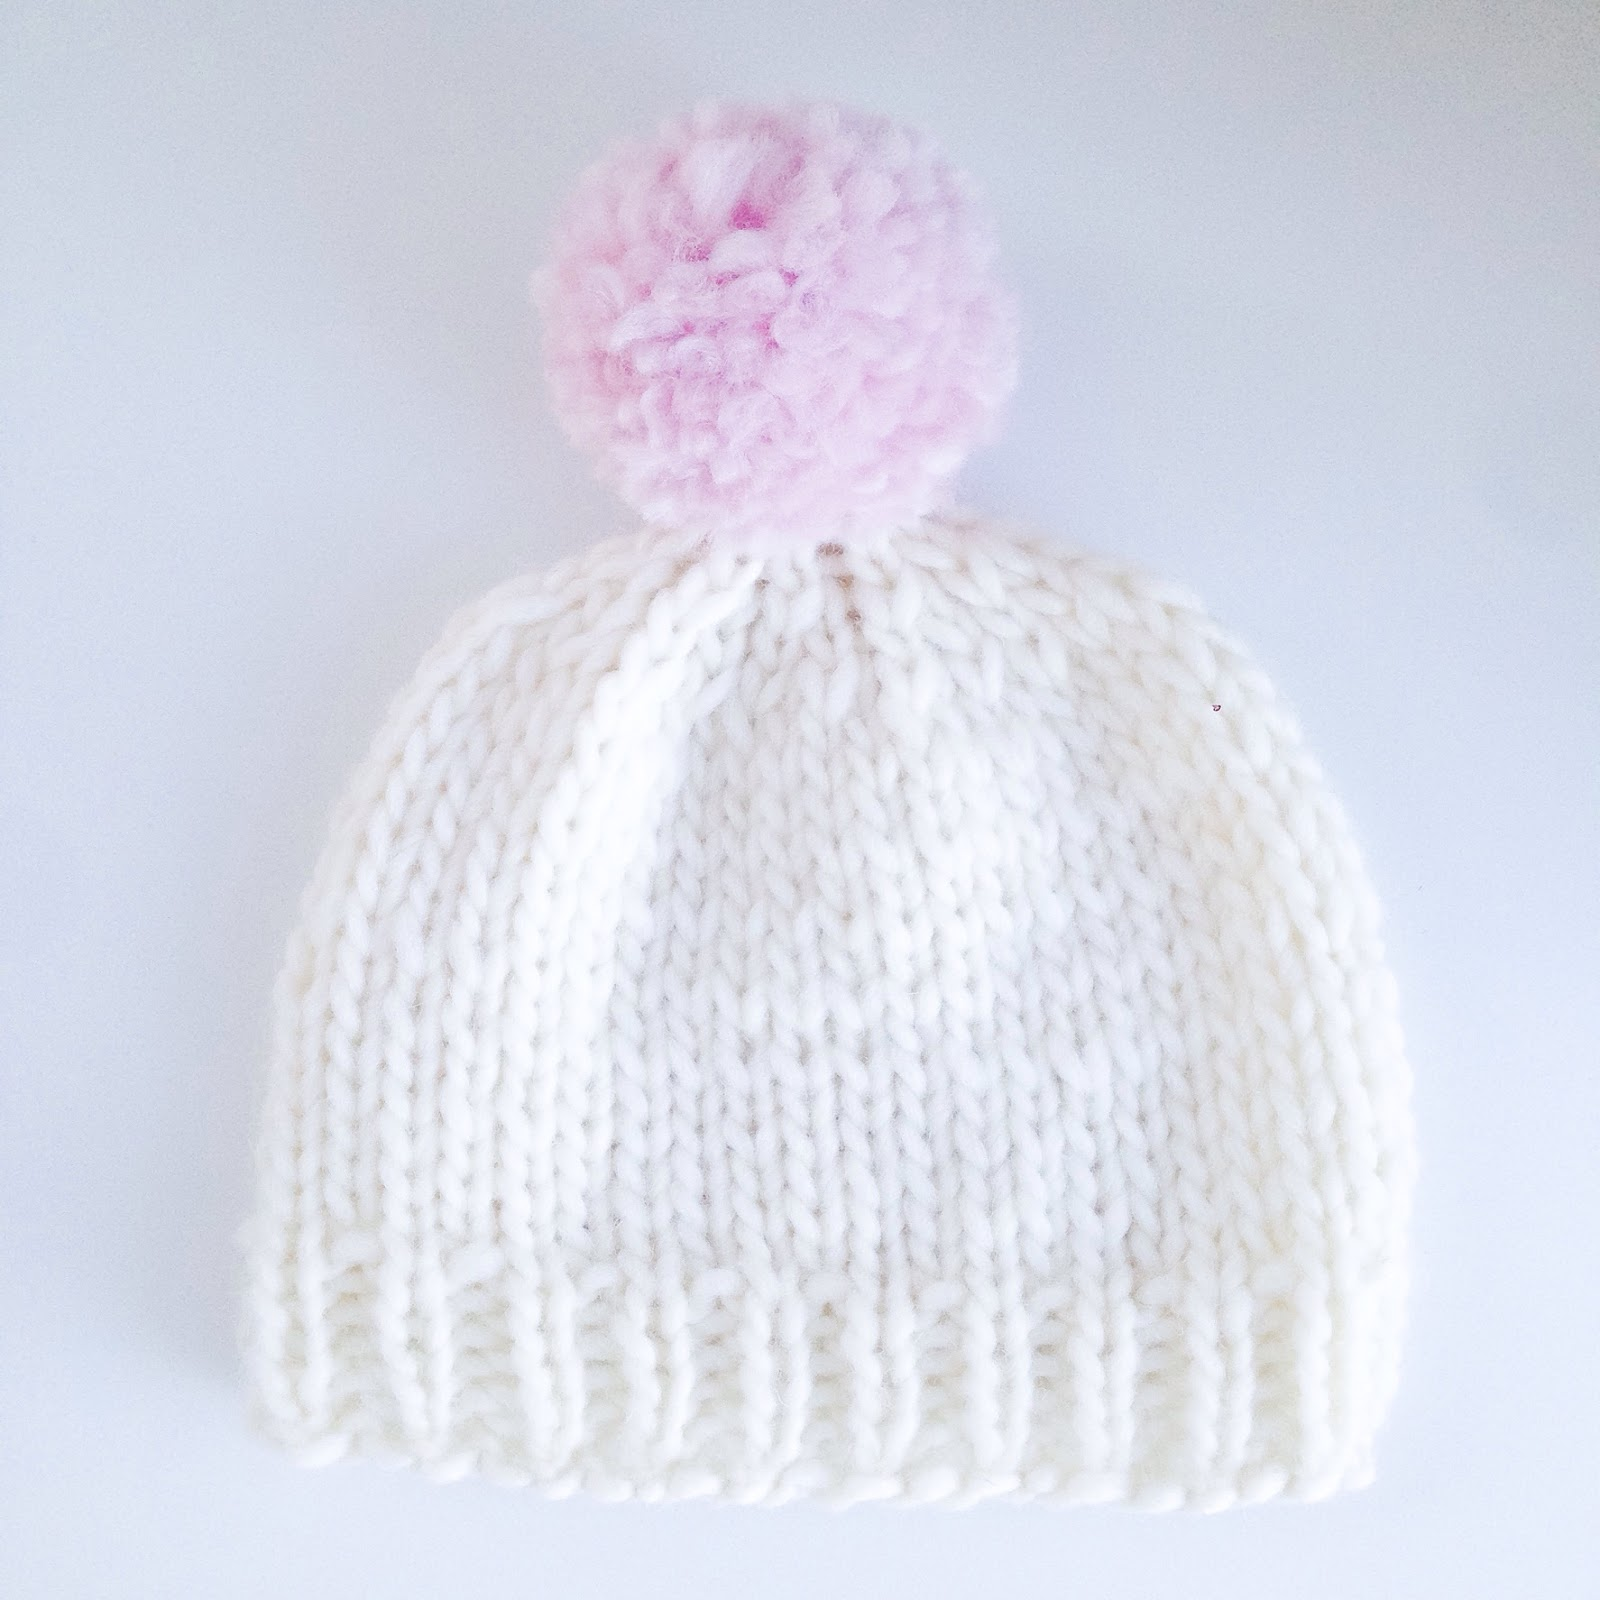 knitted hat for mommy and minis - Sofia Parapluie